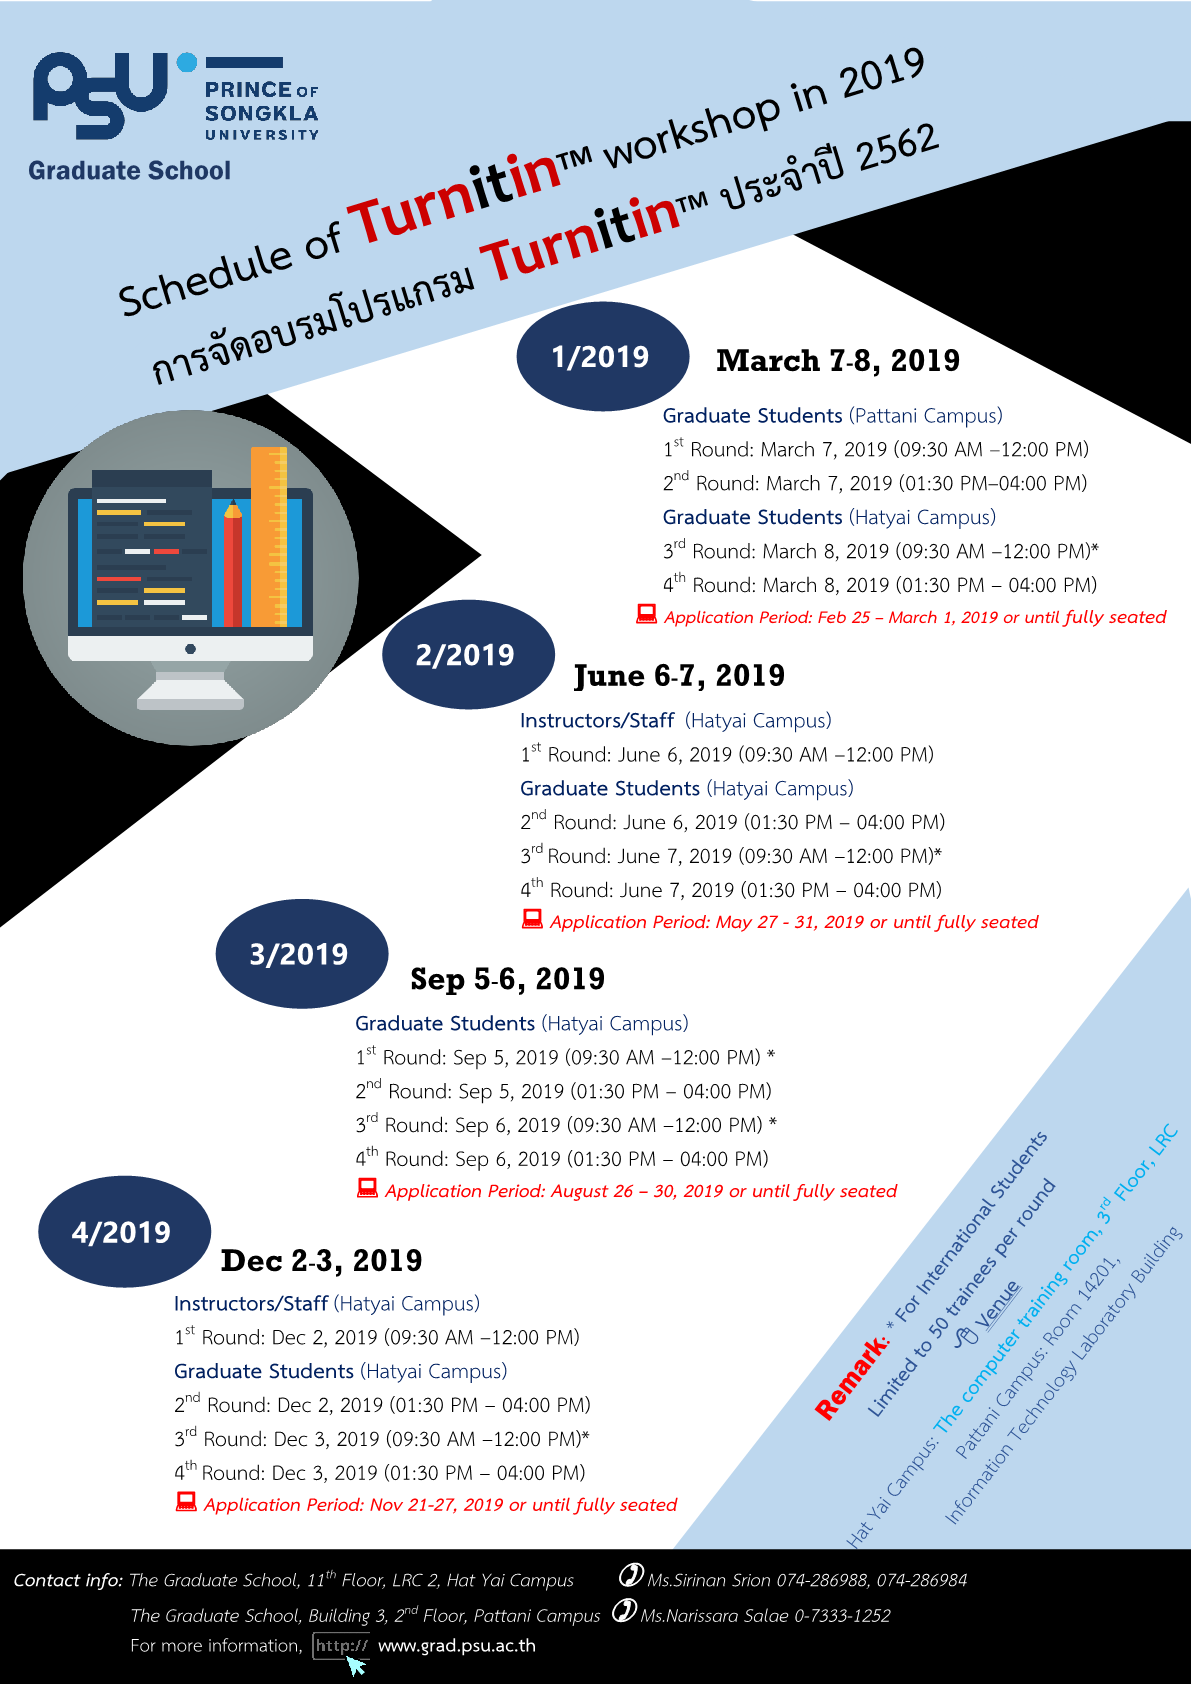 Announcement Turnitin workshop 2019